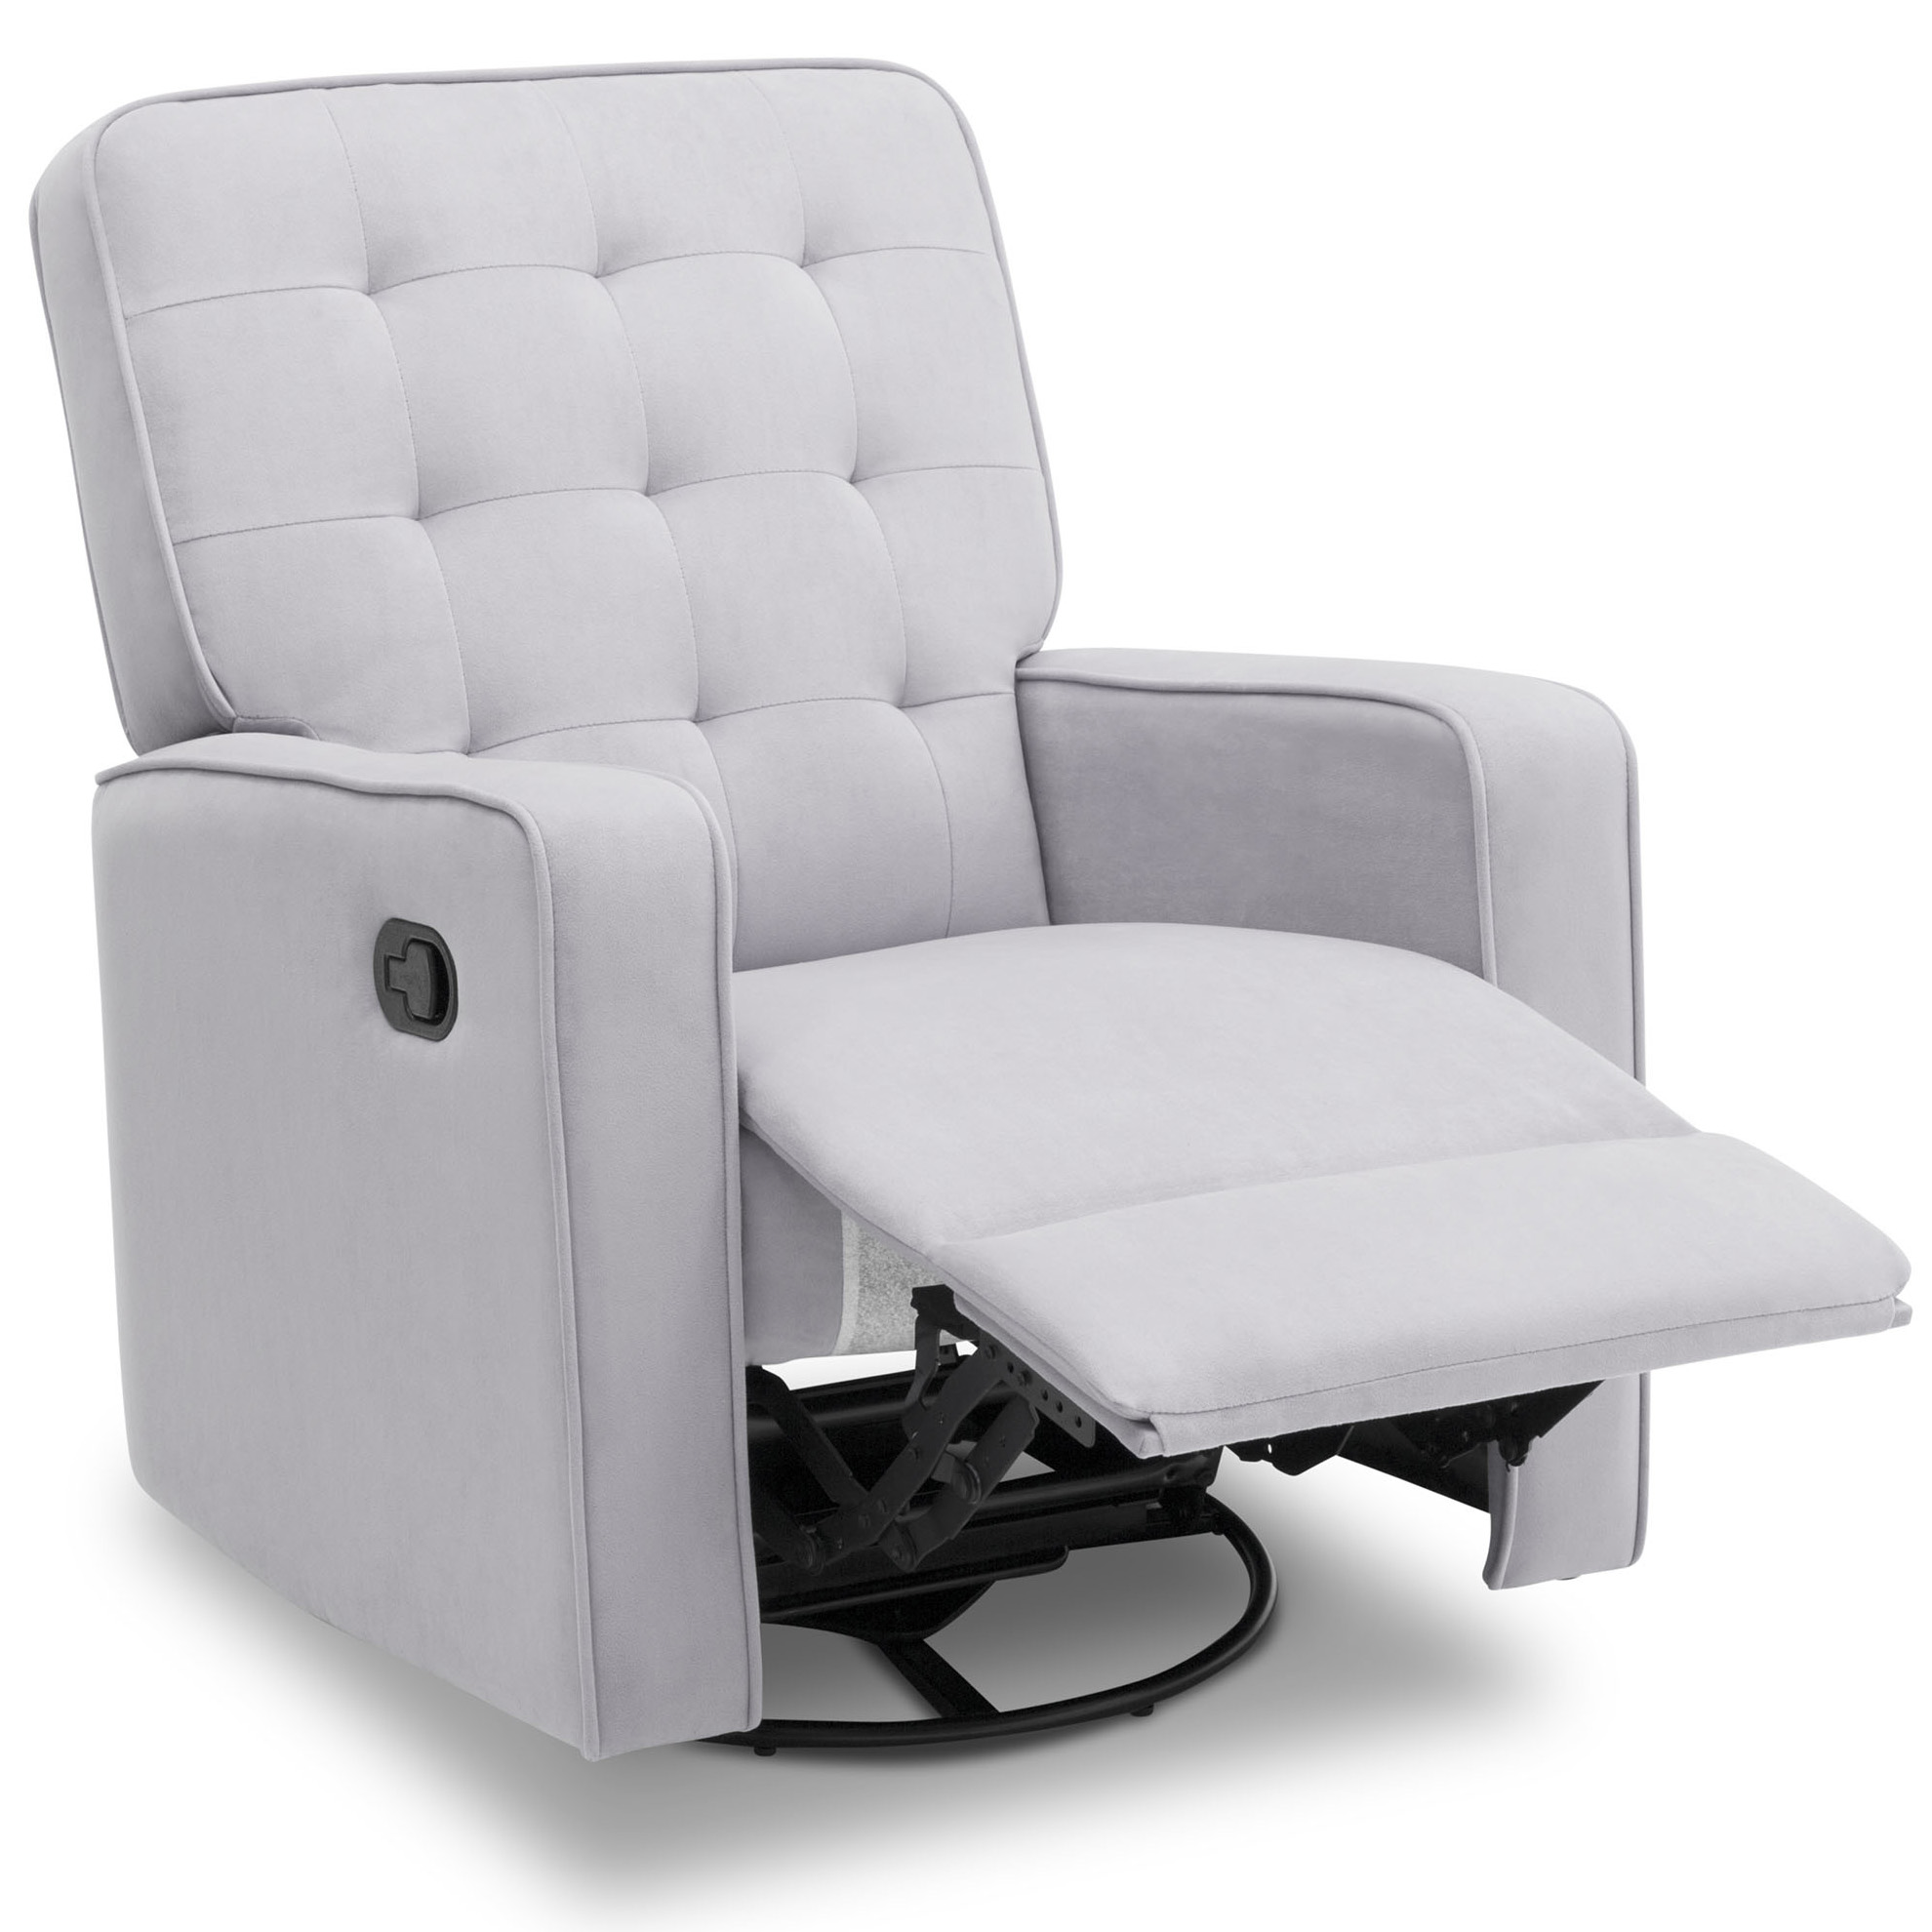 Delta Children Graham Nursery Glider Swivel Recliner Featuring LiveSmart Fabric by Culp, Linen